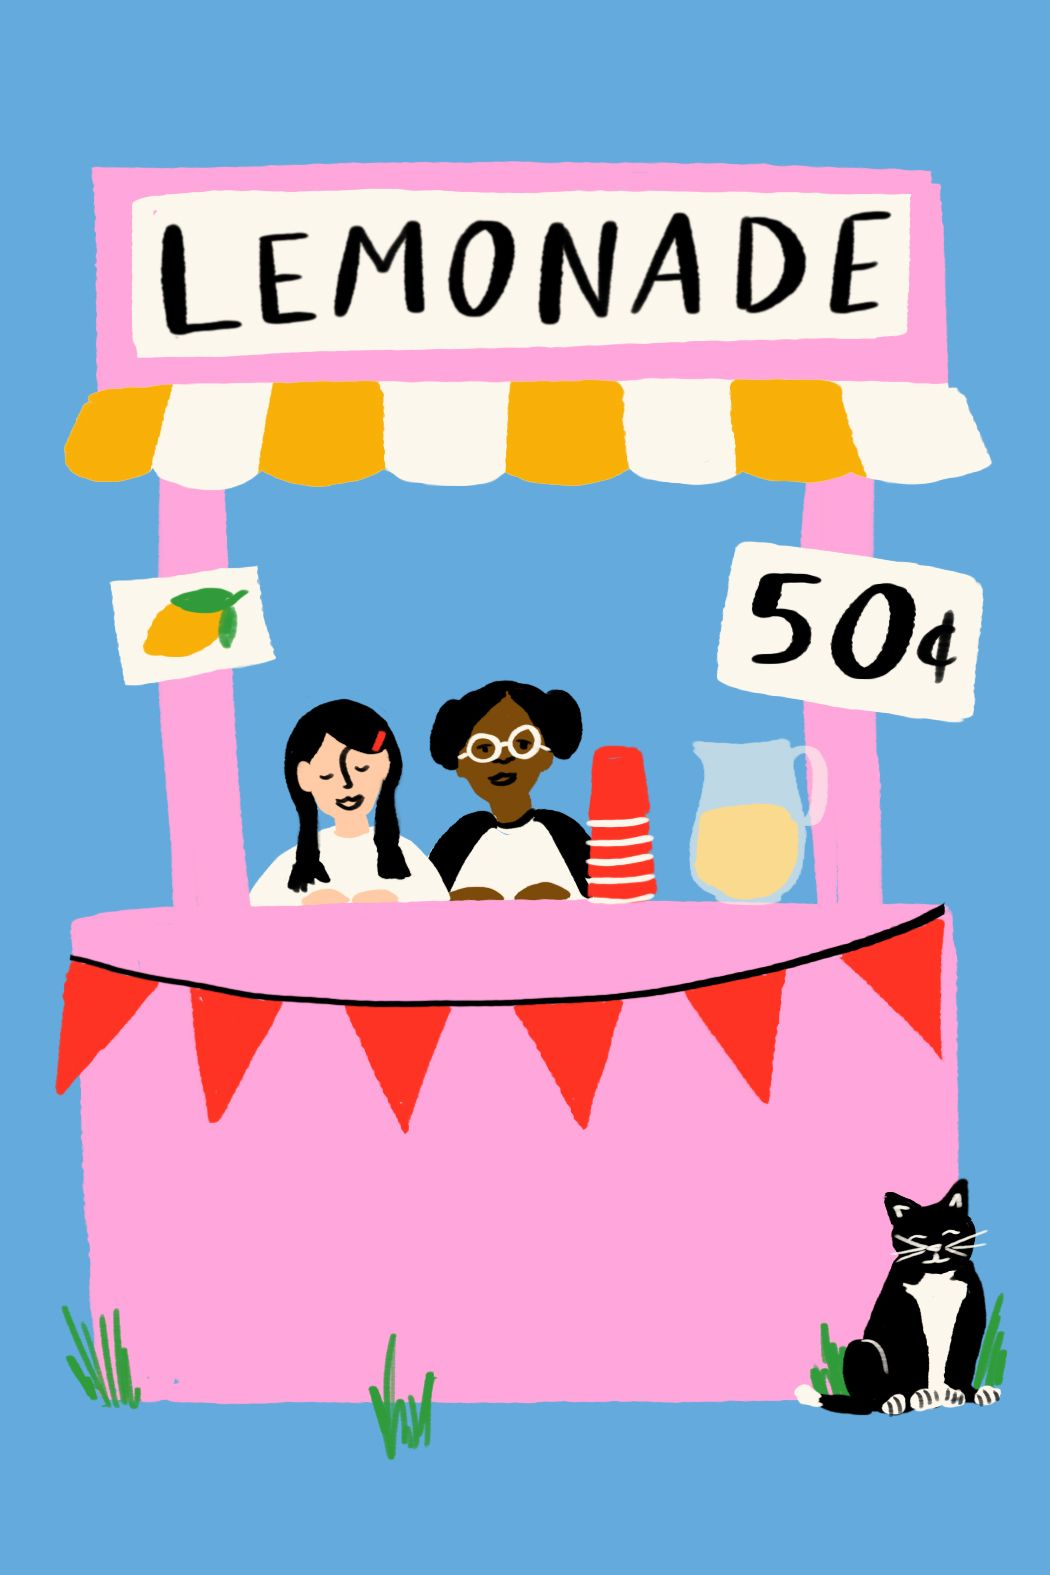 small town traditions lemonade stand